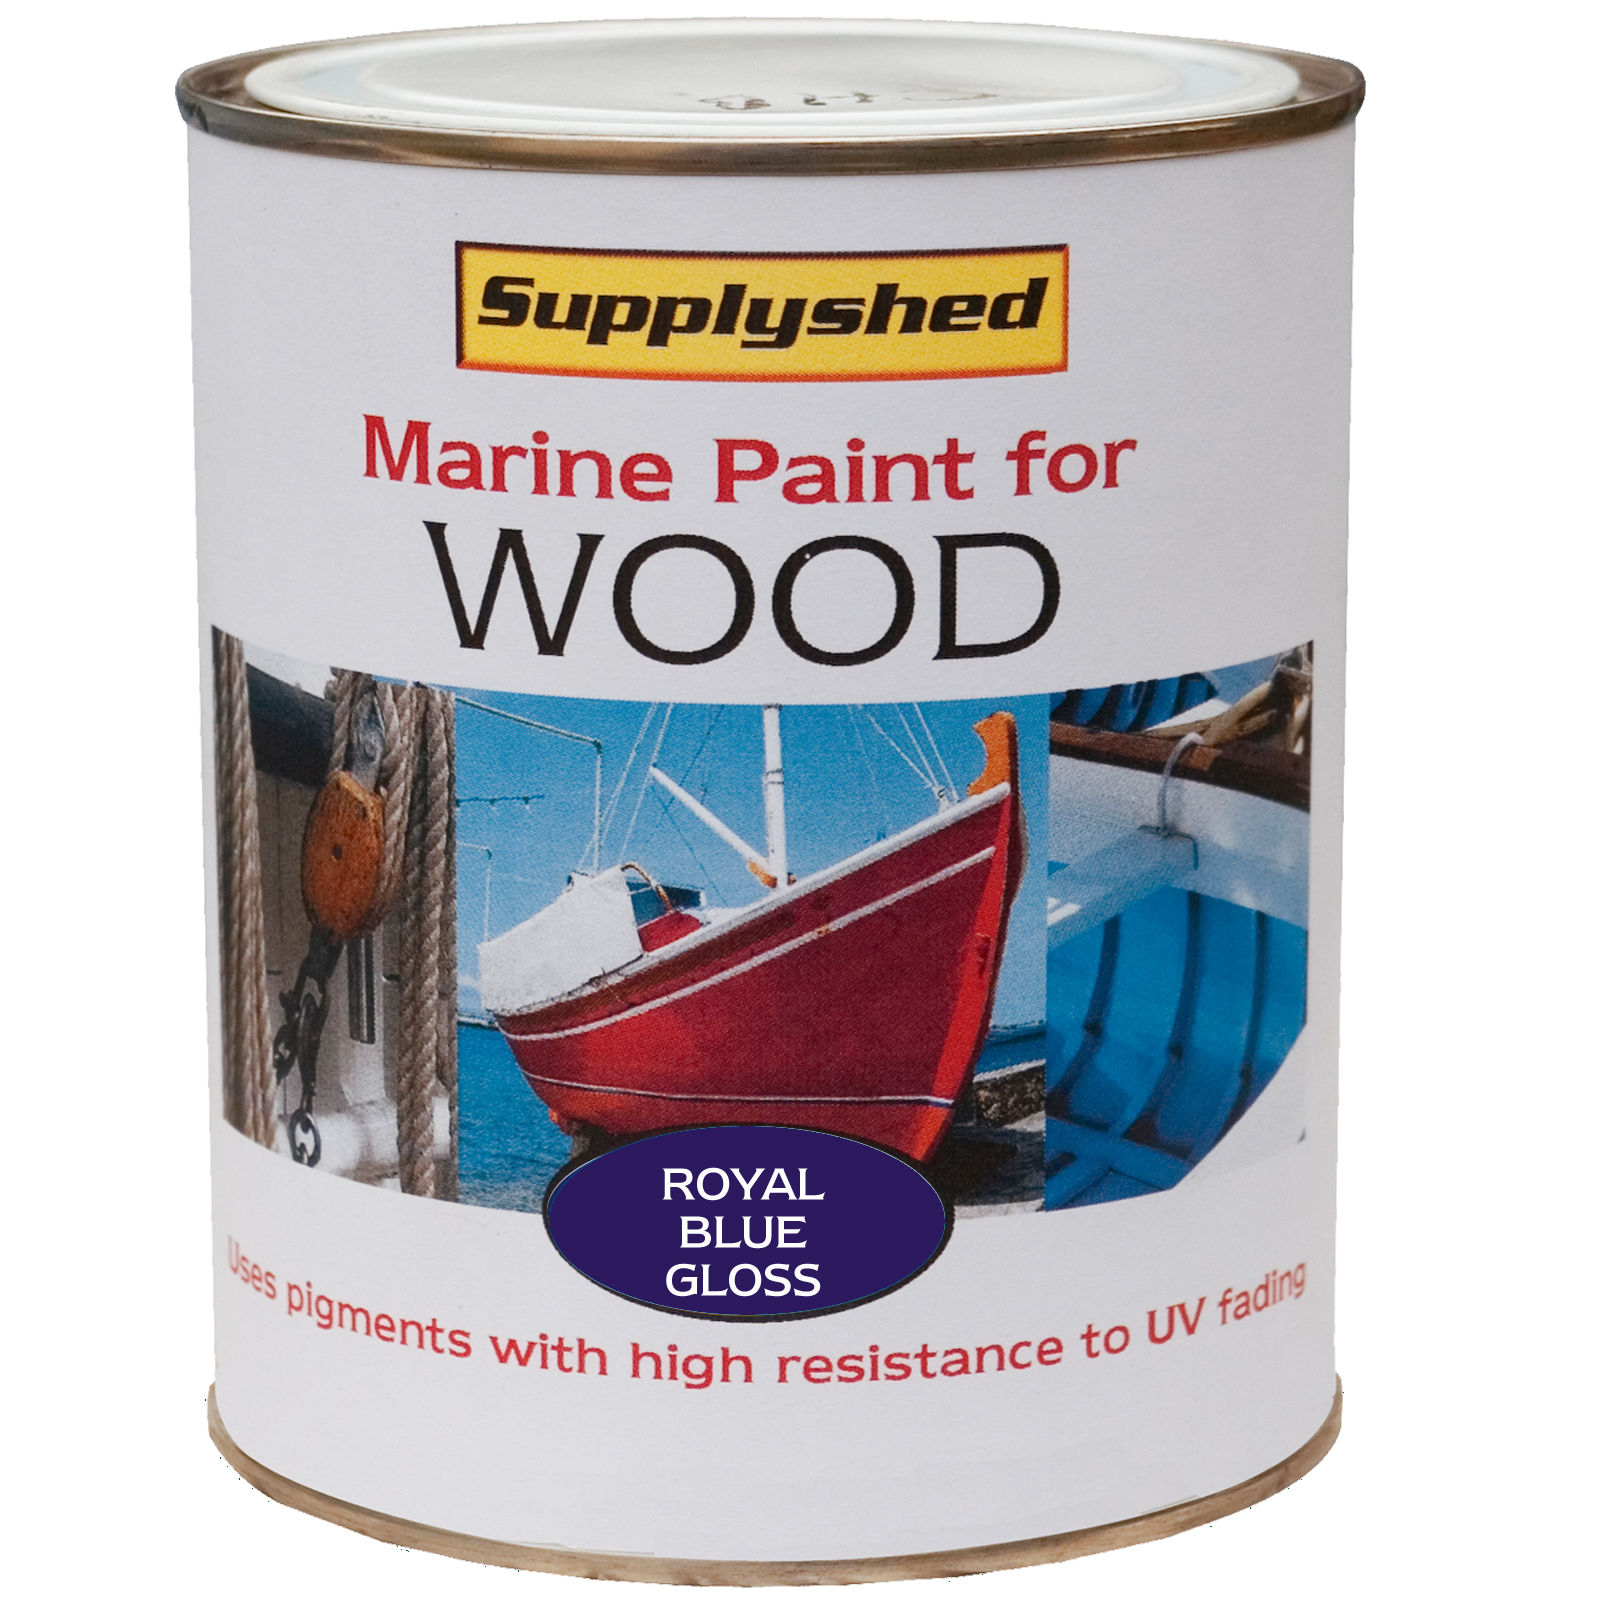 Marine Gloss Wooden Boat Paint Over Paints Most Other Paint Types No Expensive Thinners Needed